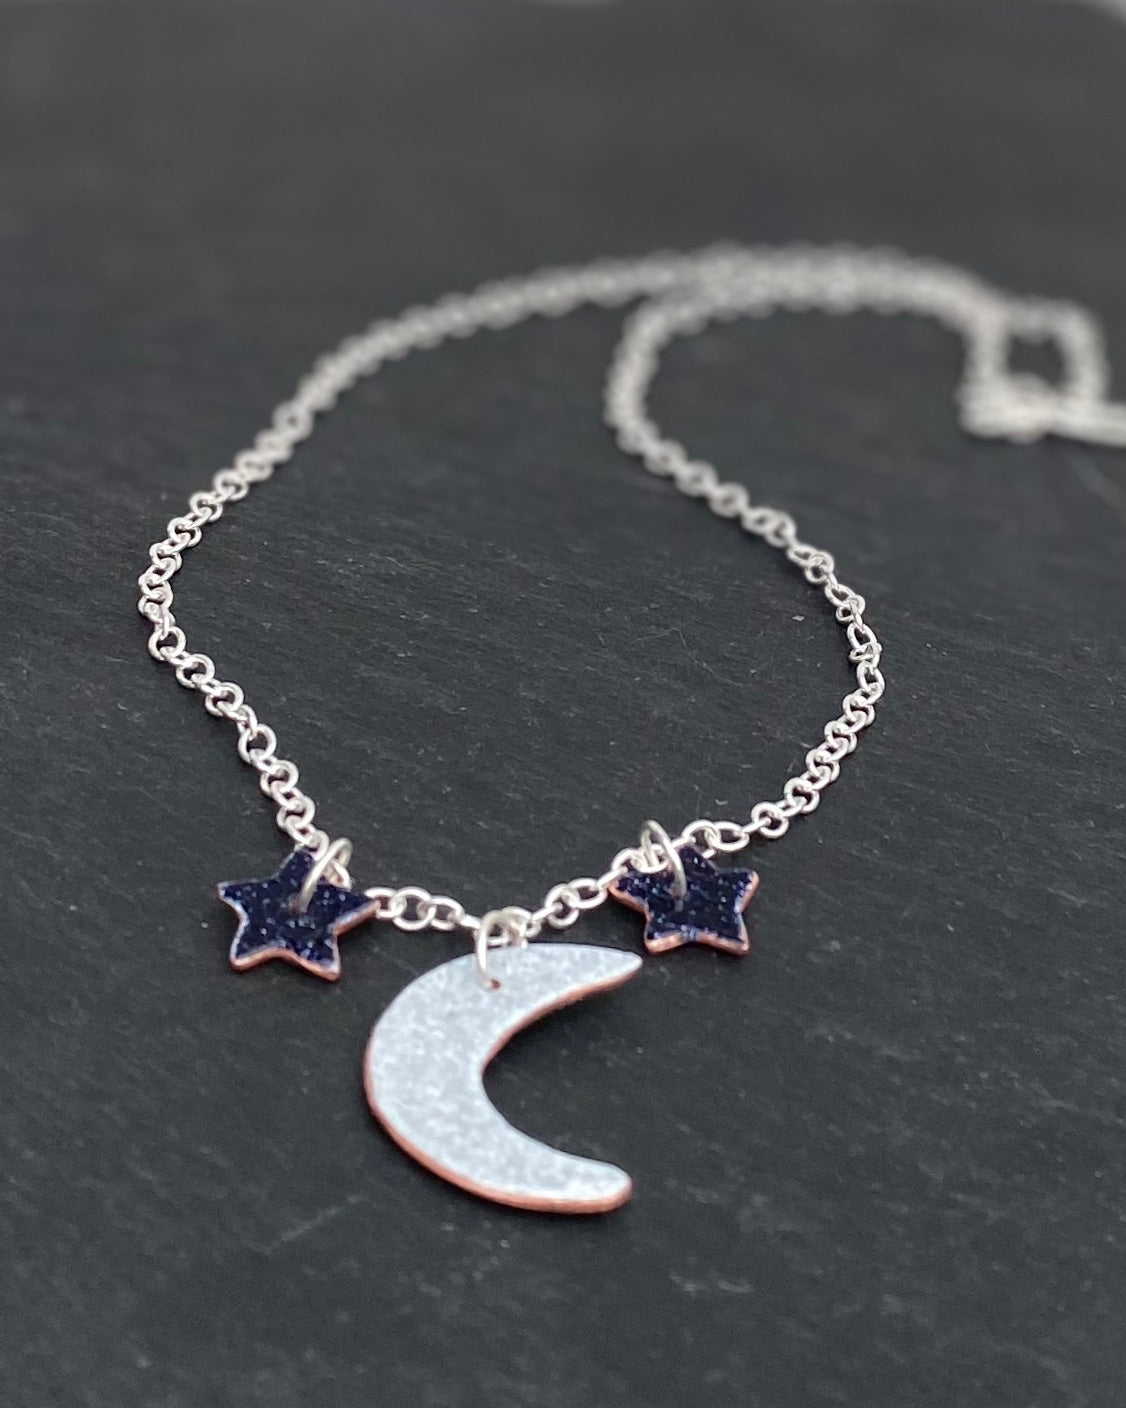 Celestial Necklace